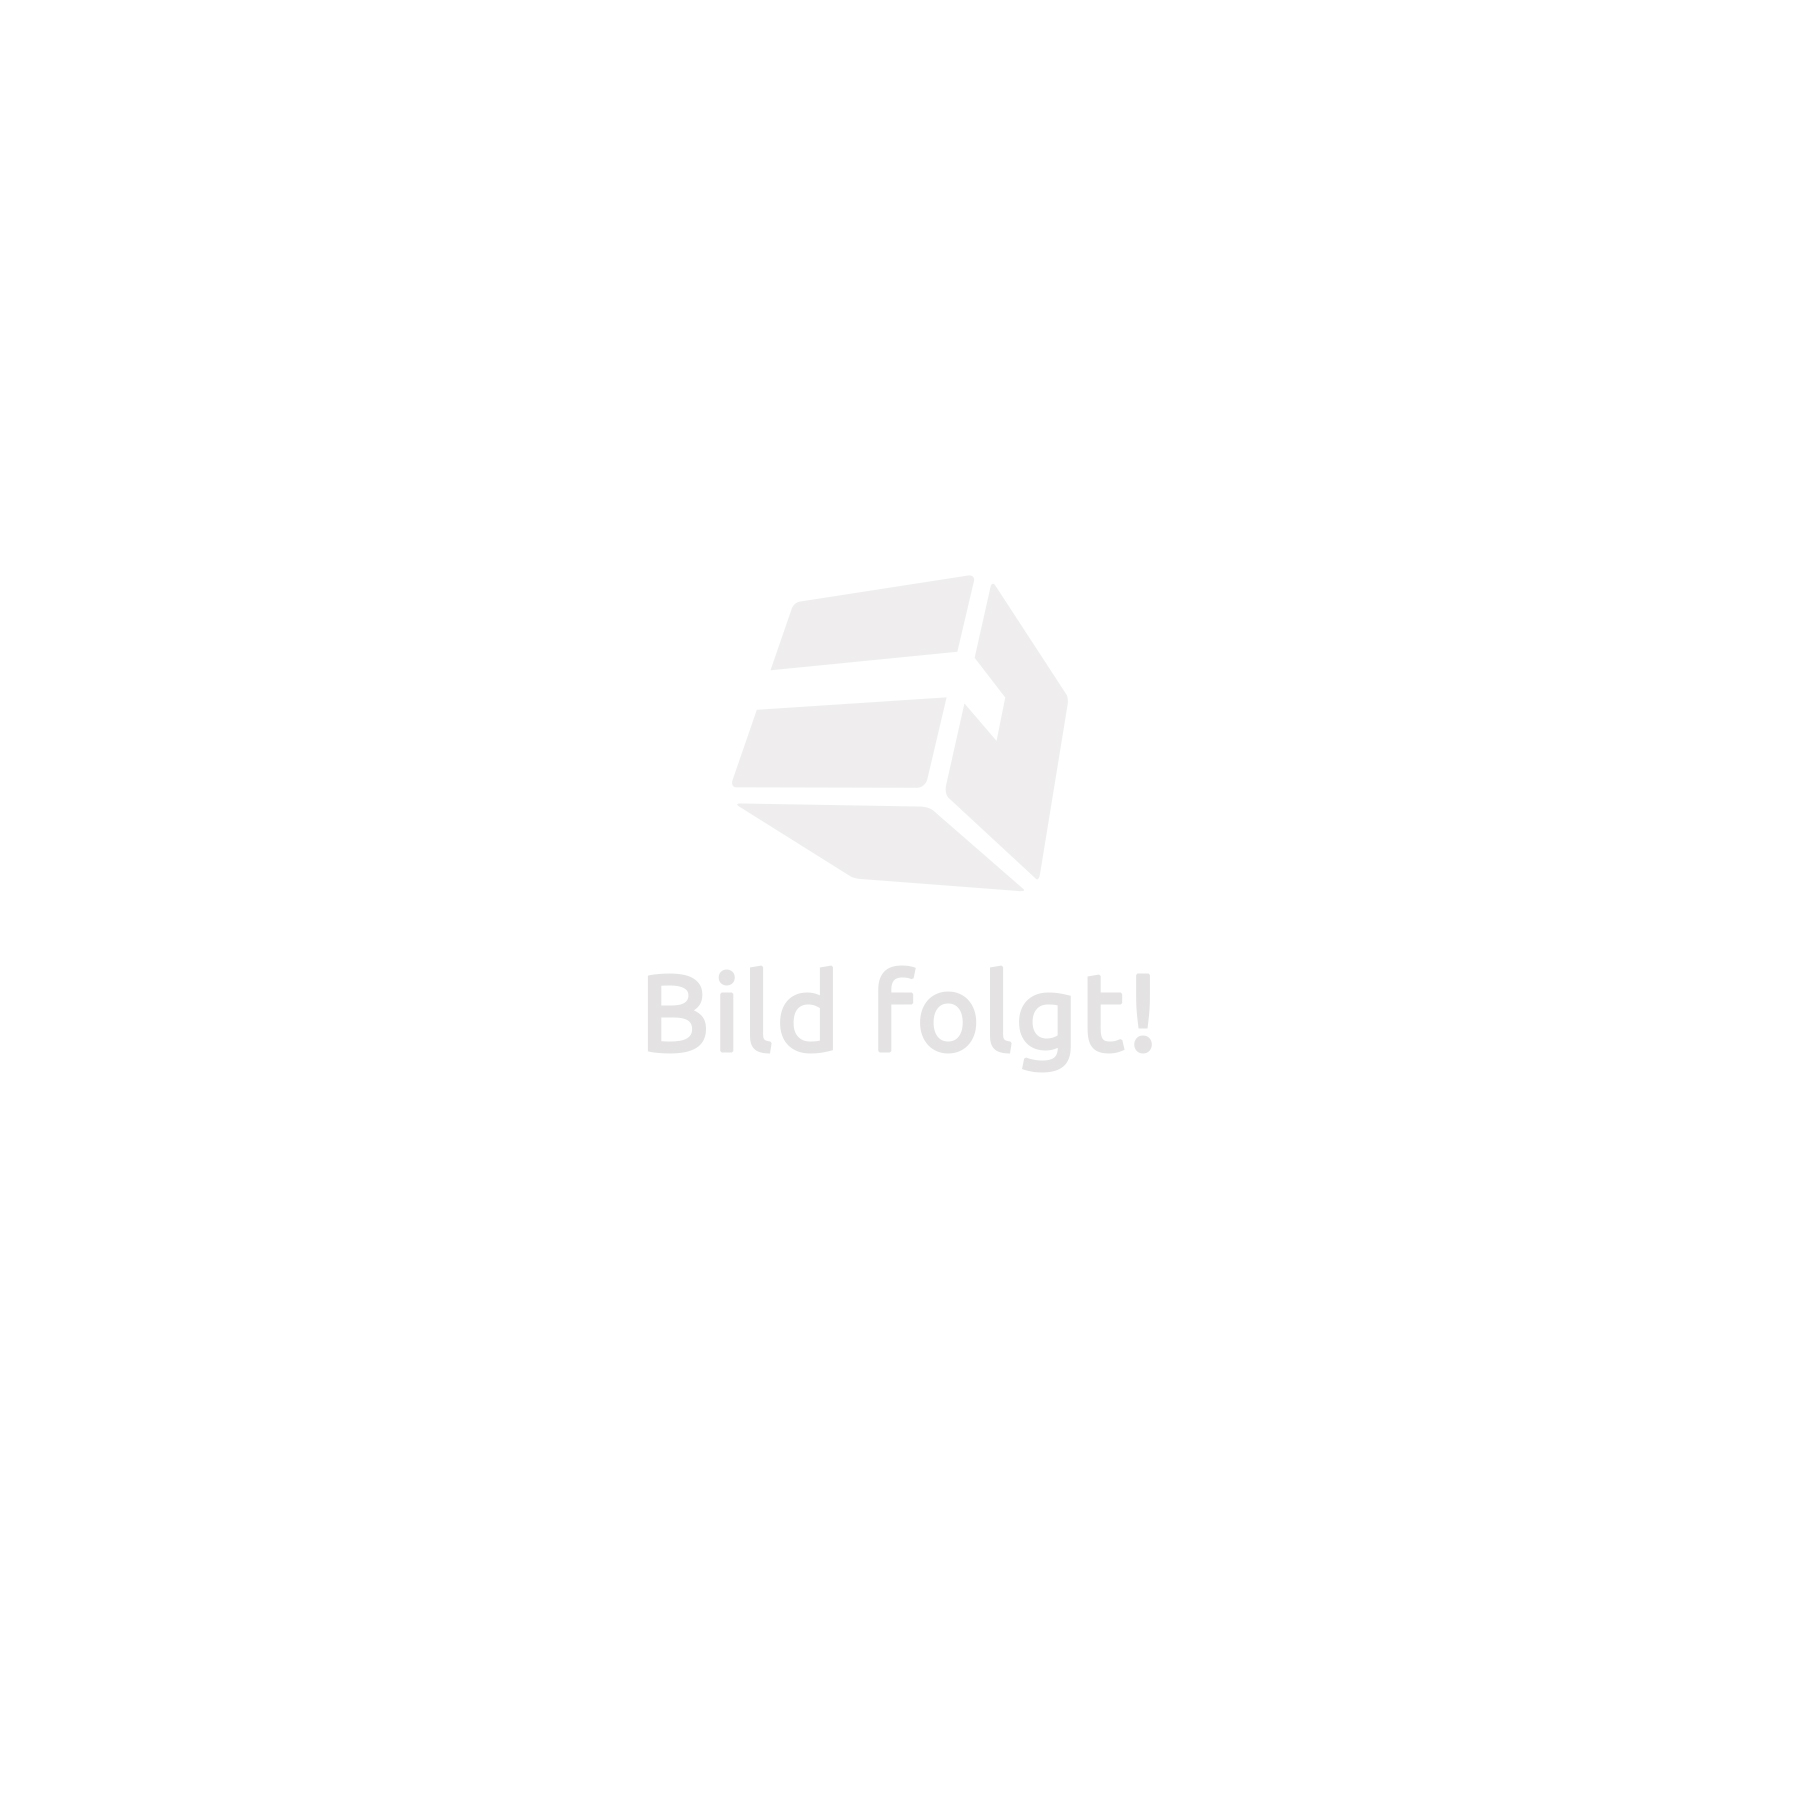 "Soporte de pared para pantallas de 32-55"" inclinable"